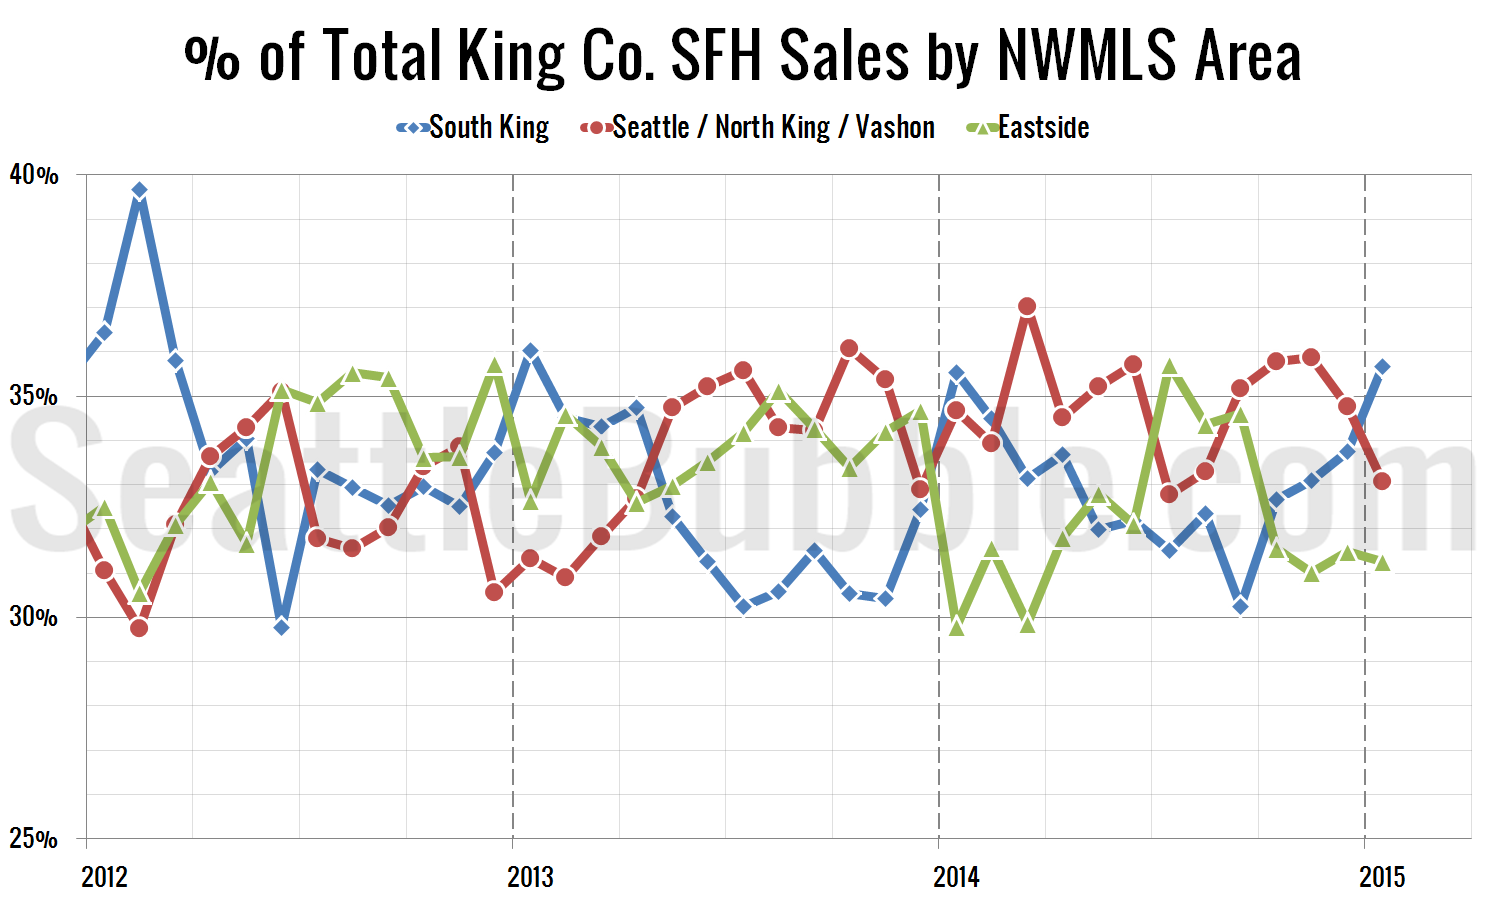 NWMLS-King-Region-Breakdown-lg_2015-01